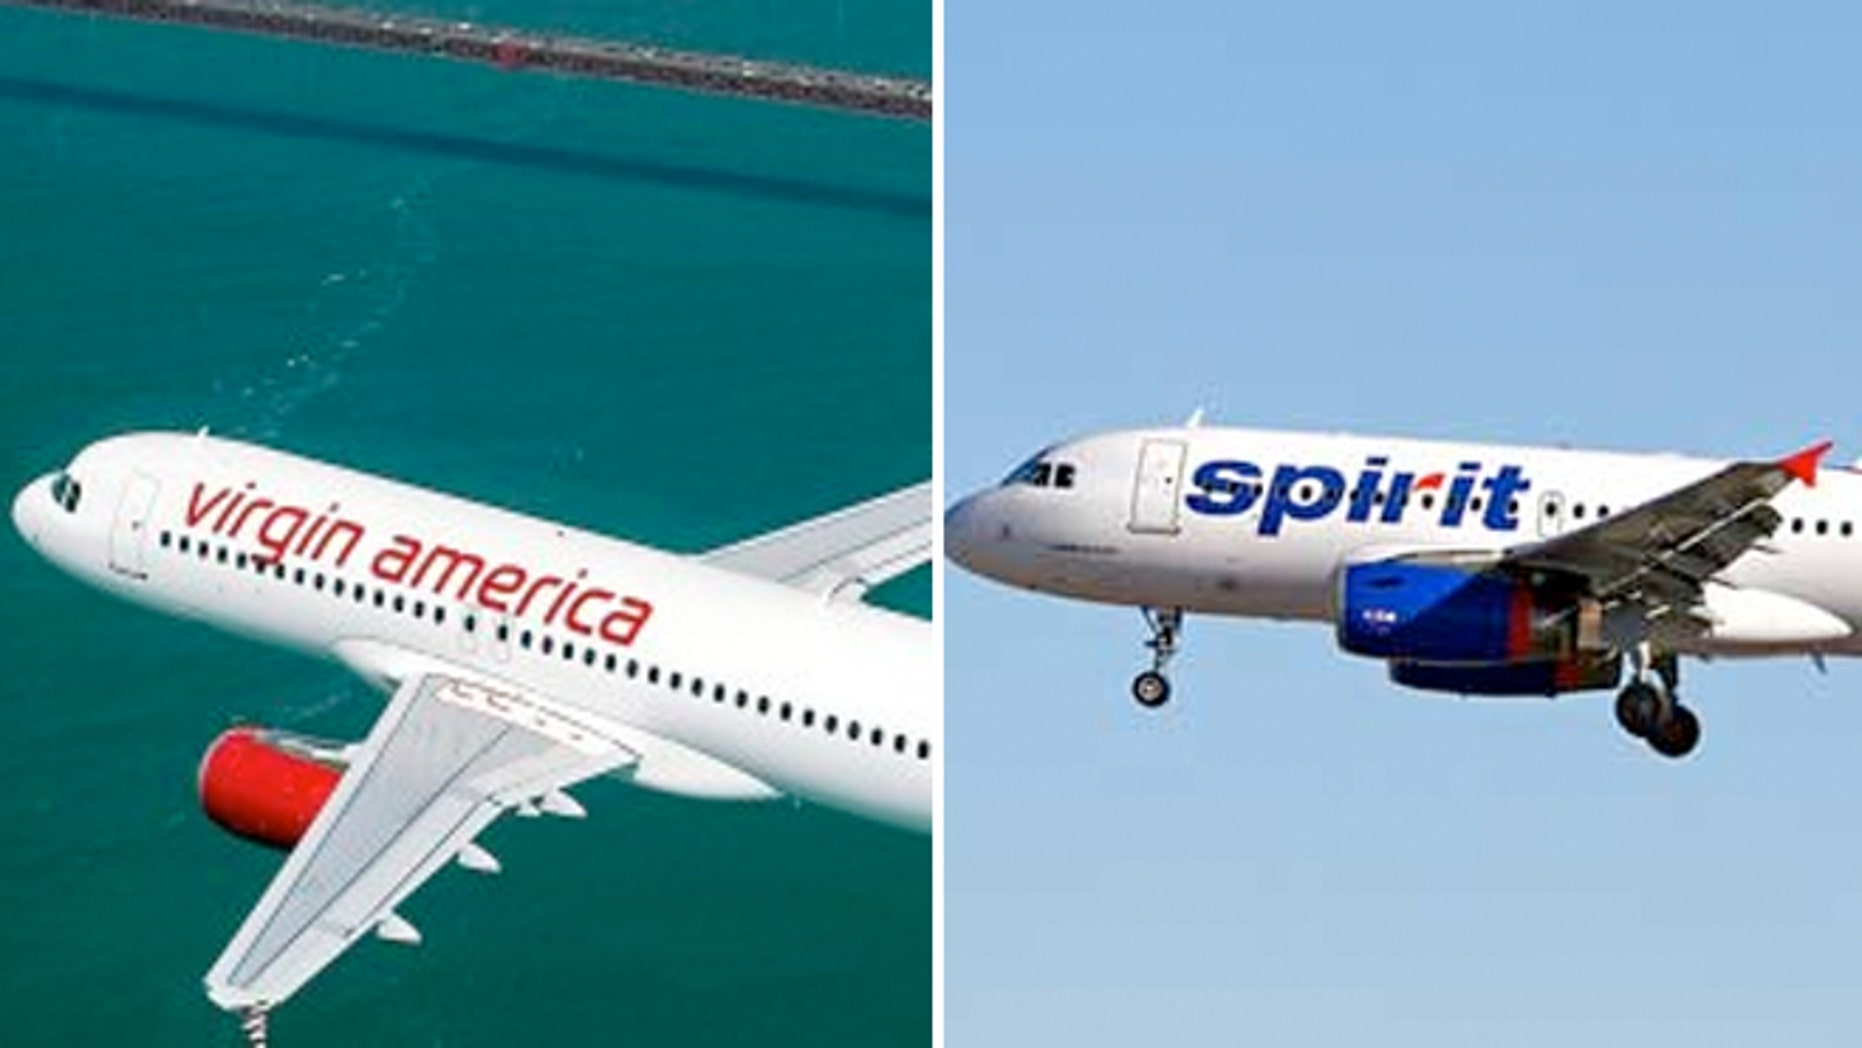 Consumer Reports ranked Virgin America the top airline for customer satisfaction, while Spirit was ranked last.